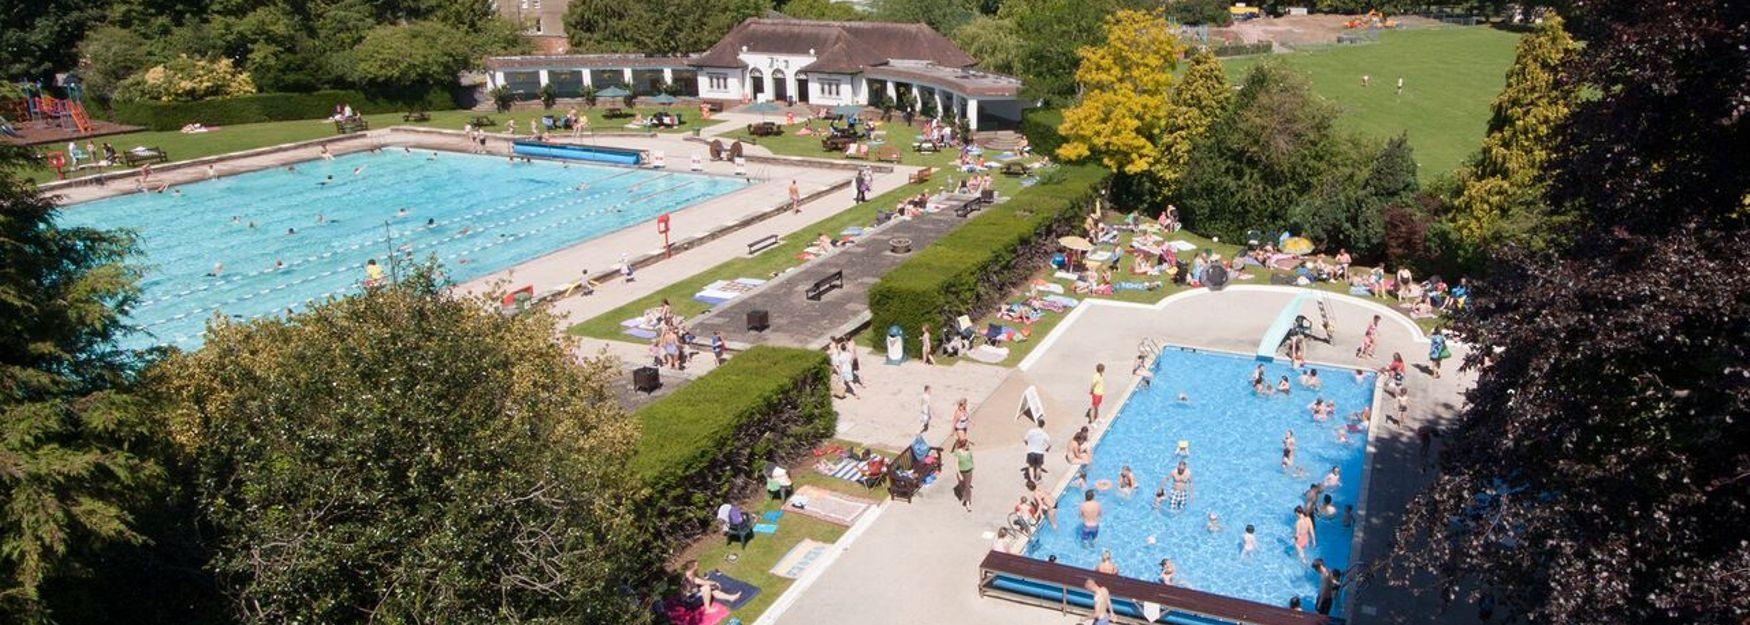 Aerial view of Sandford Lido, the outdoor pool in Cheltenham